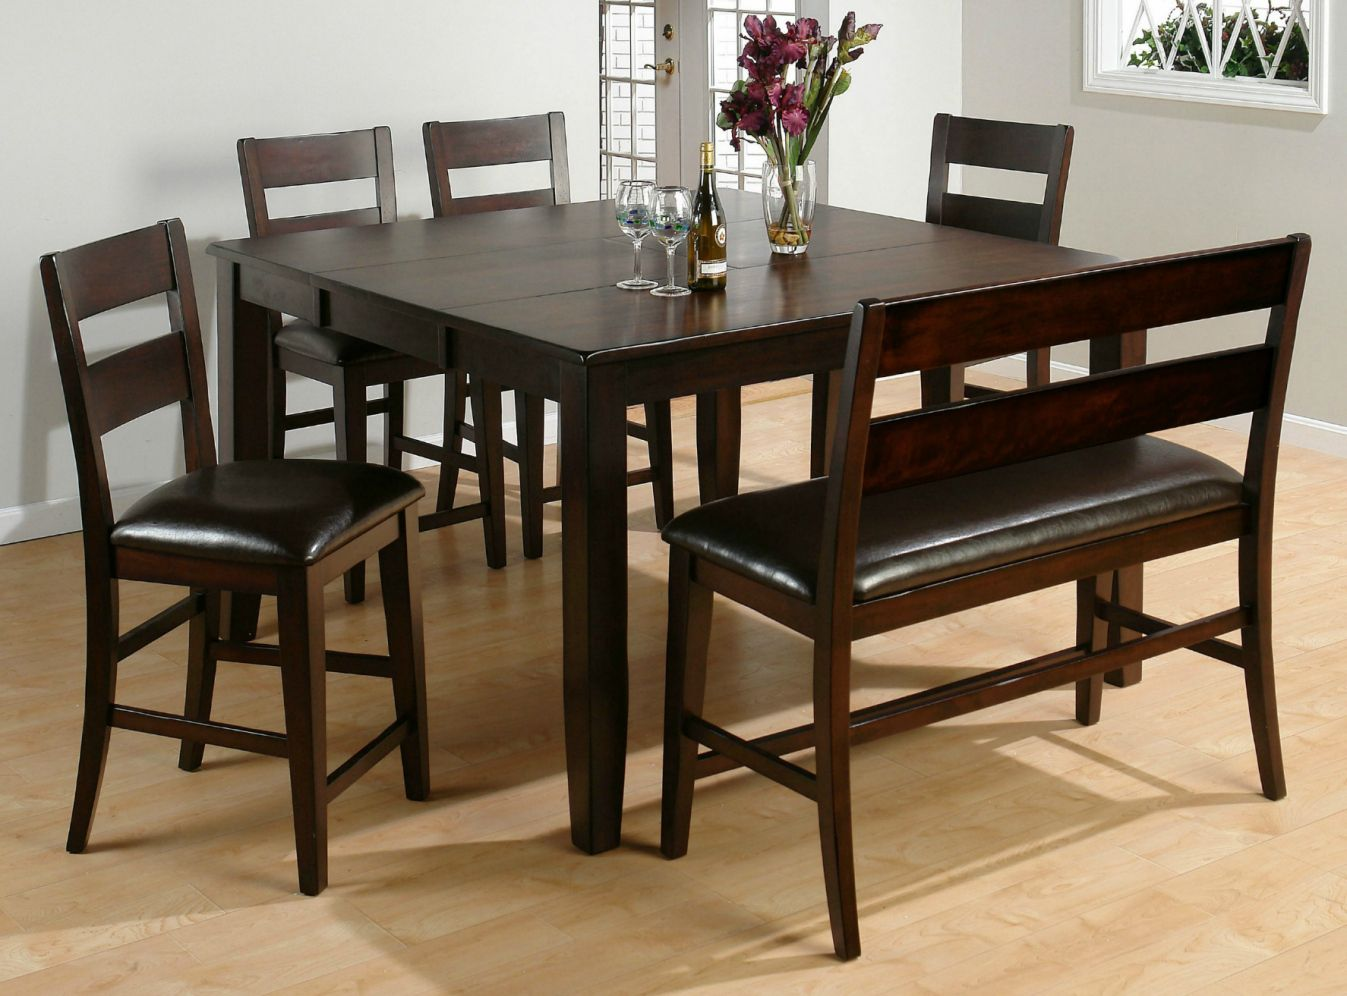 Square kitchen table with leaf elite modern furniture check more at http